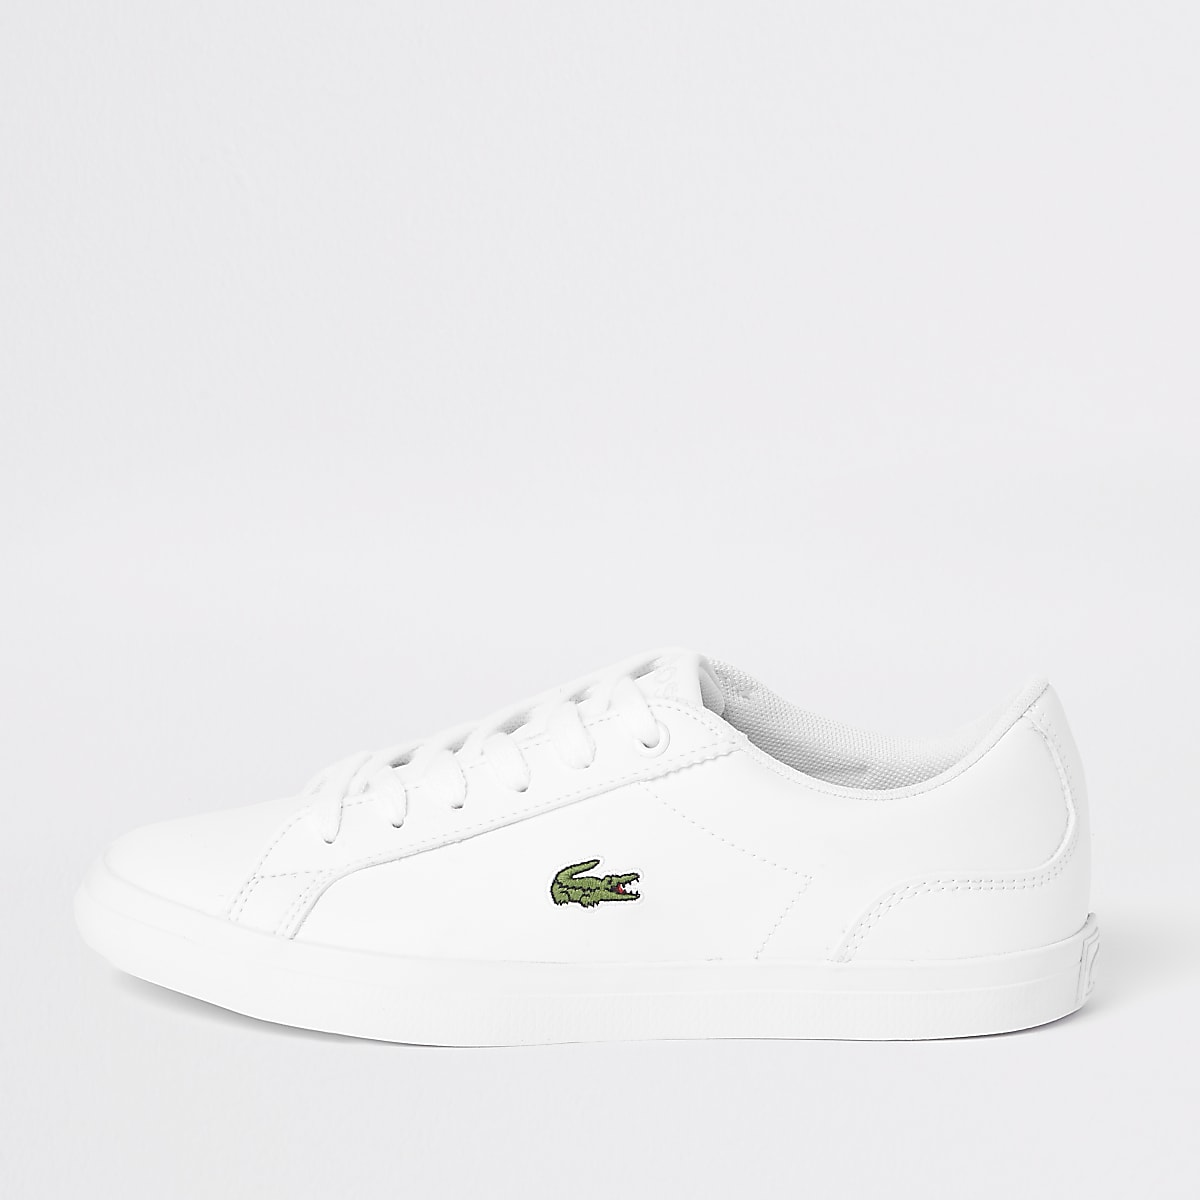 Kids Lacoste white lace up sneakers